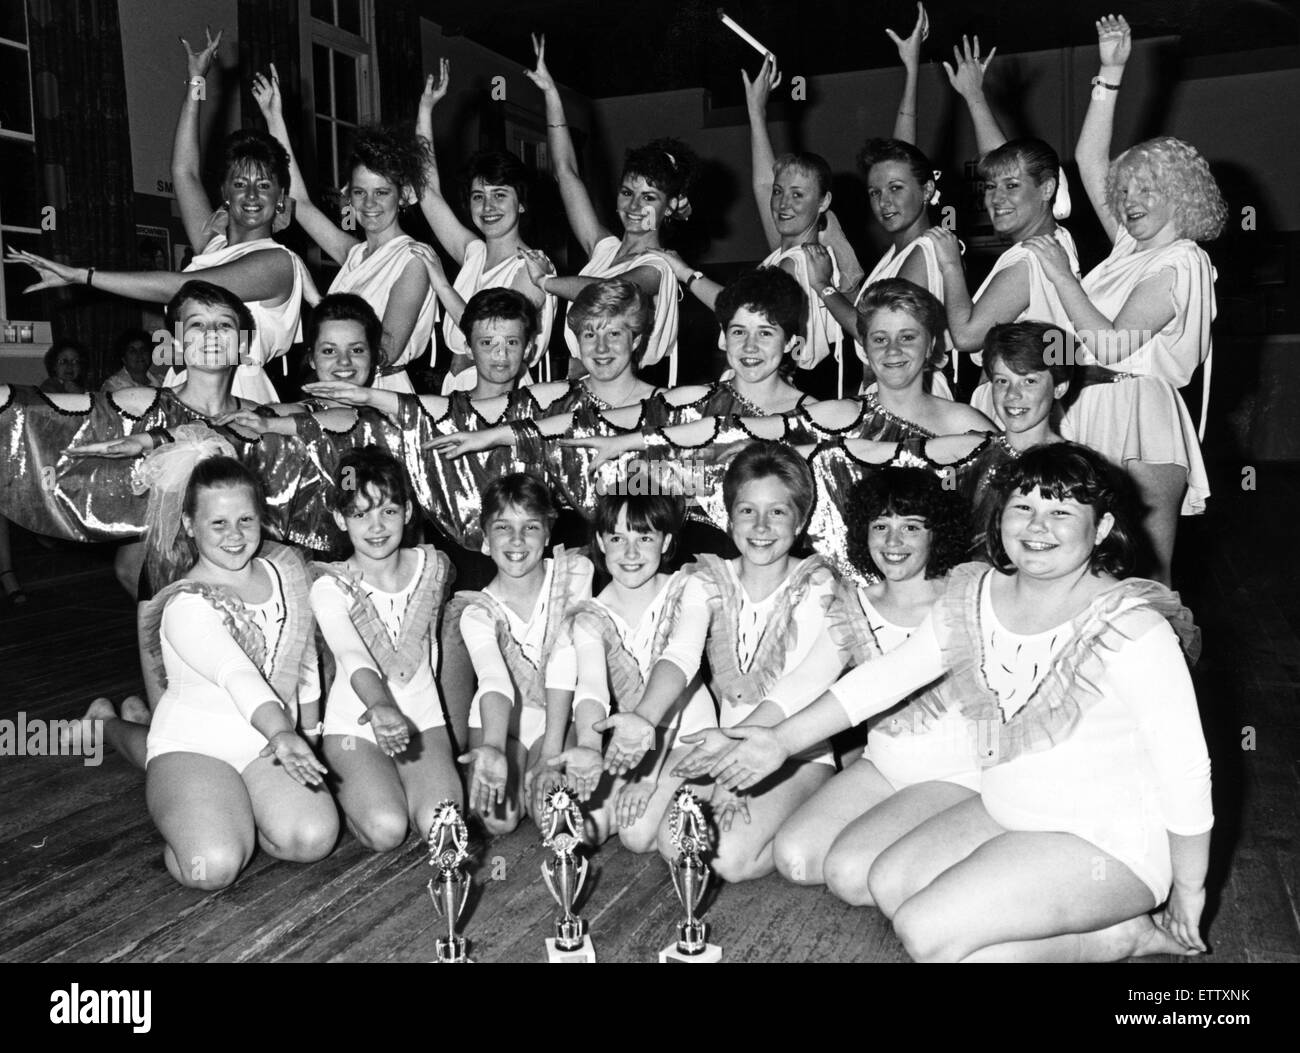 Talented girls from a Cleveland dance school swept the bard at a major championship. The disco youngsters from the - Stock Image